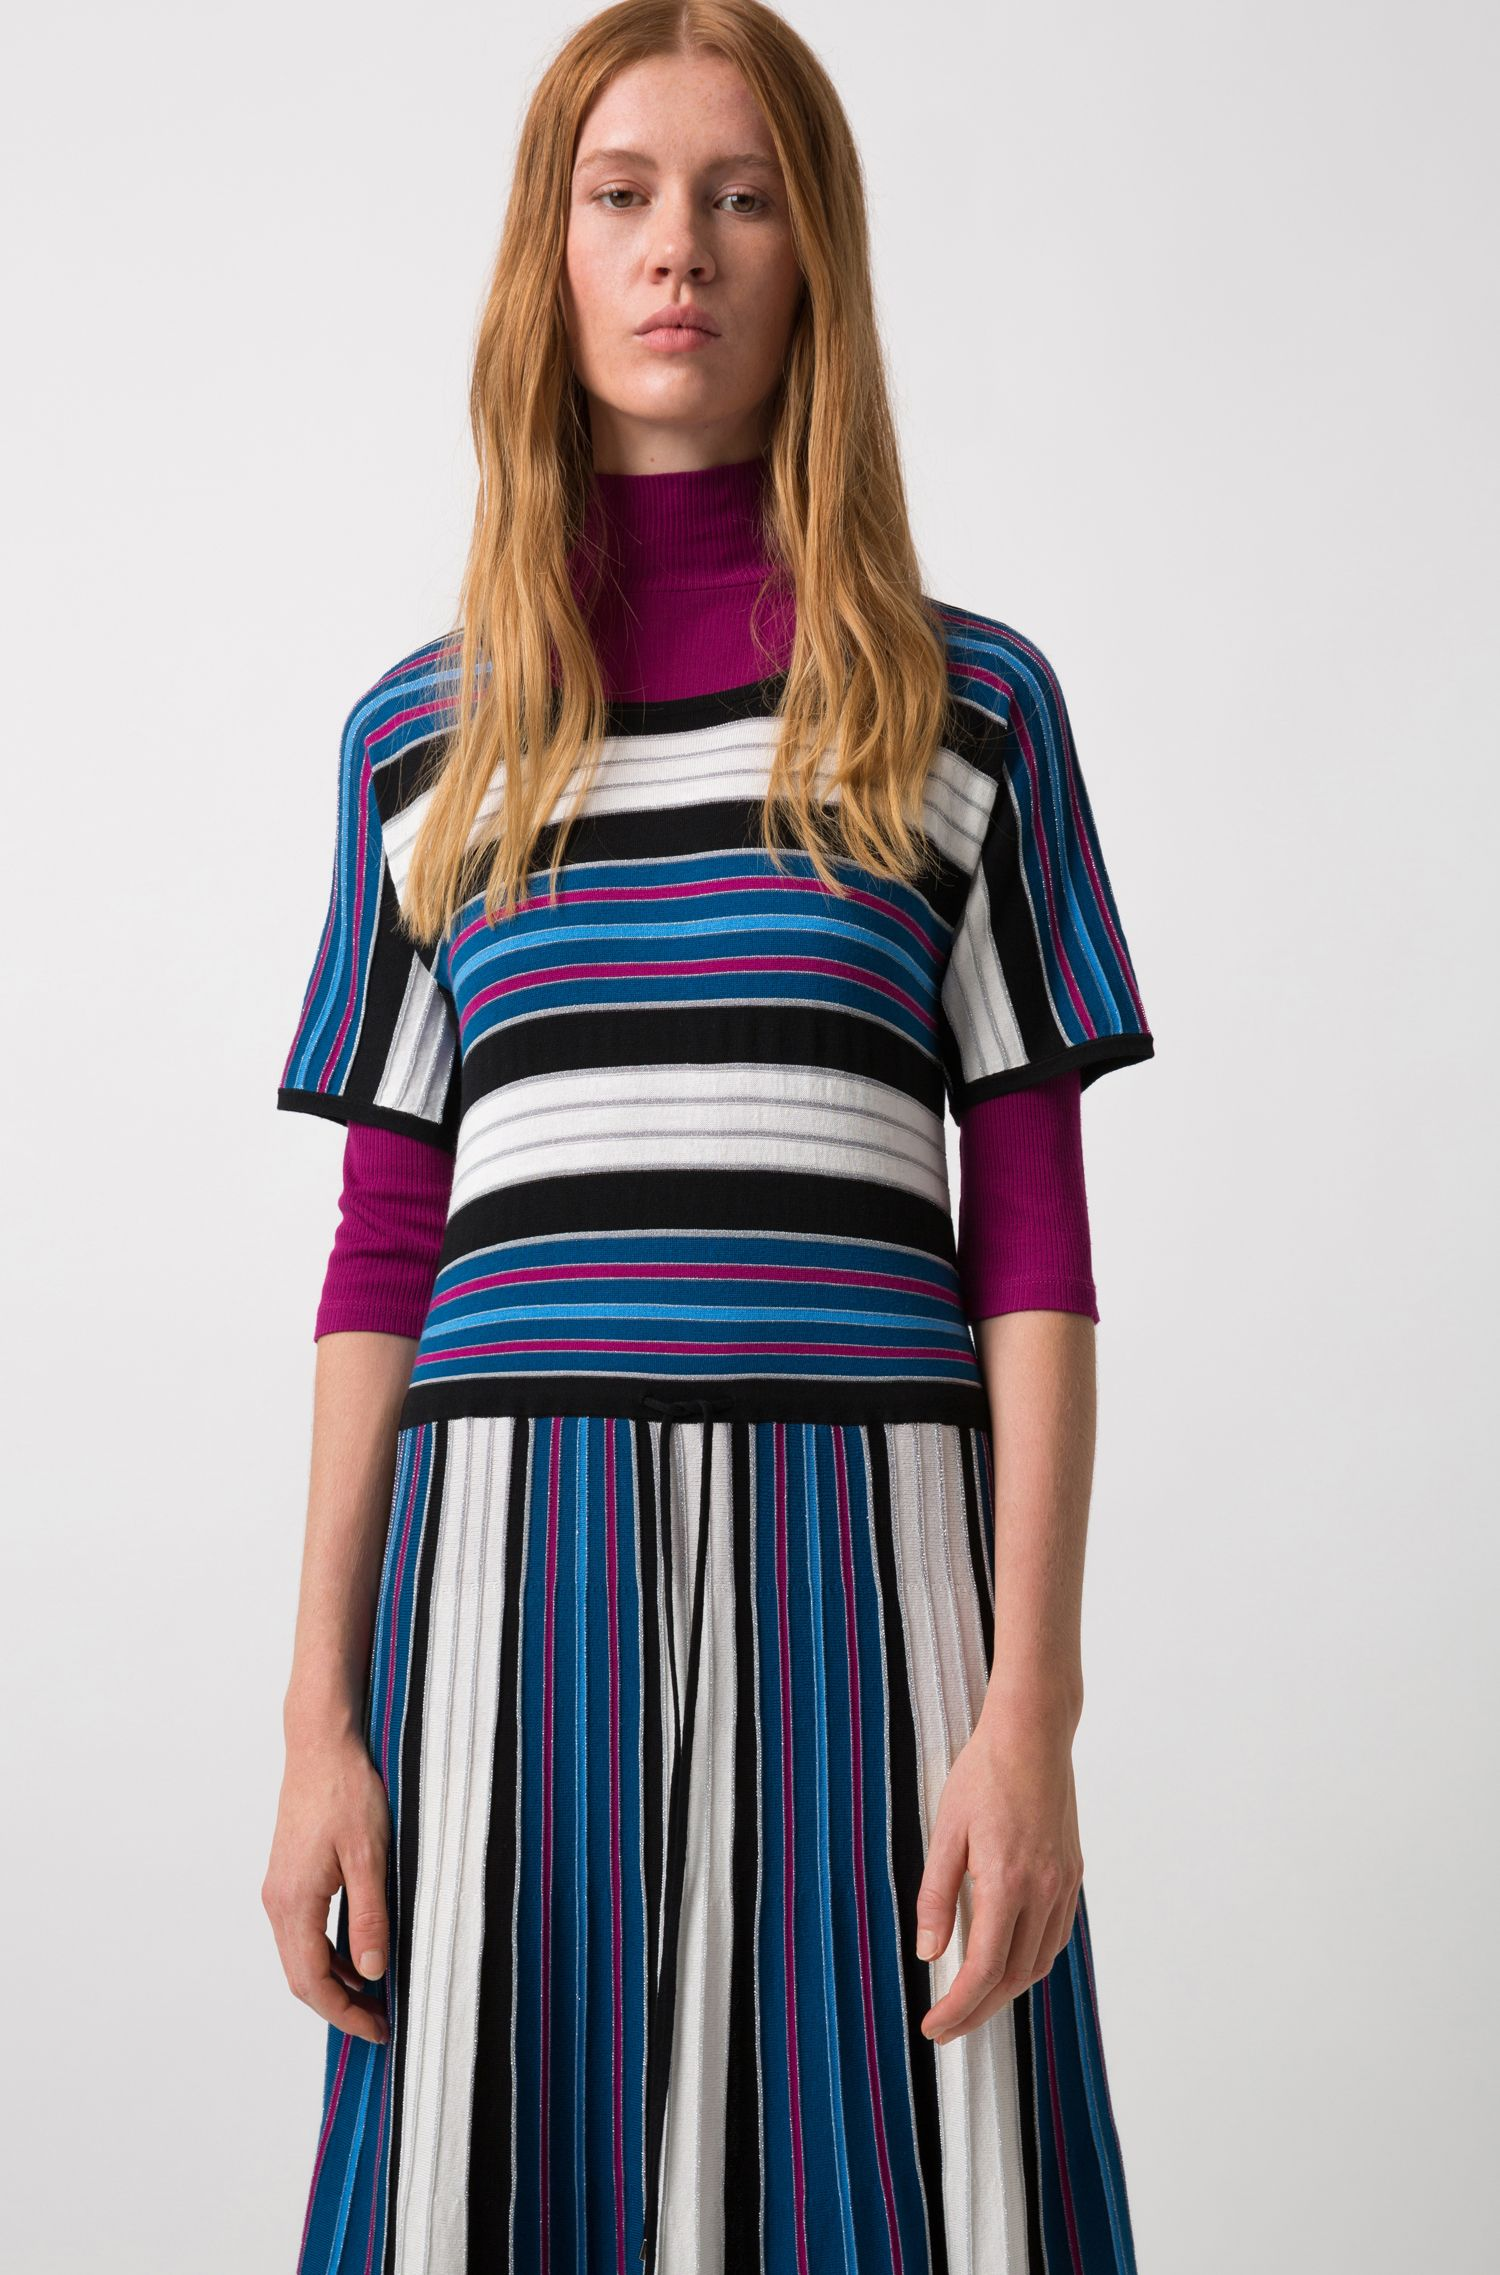 Short-sleeved midi dress in a striped knit, Patterned